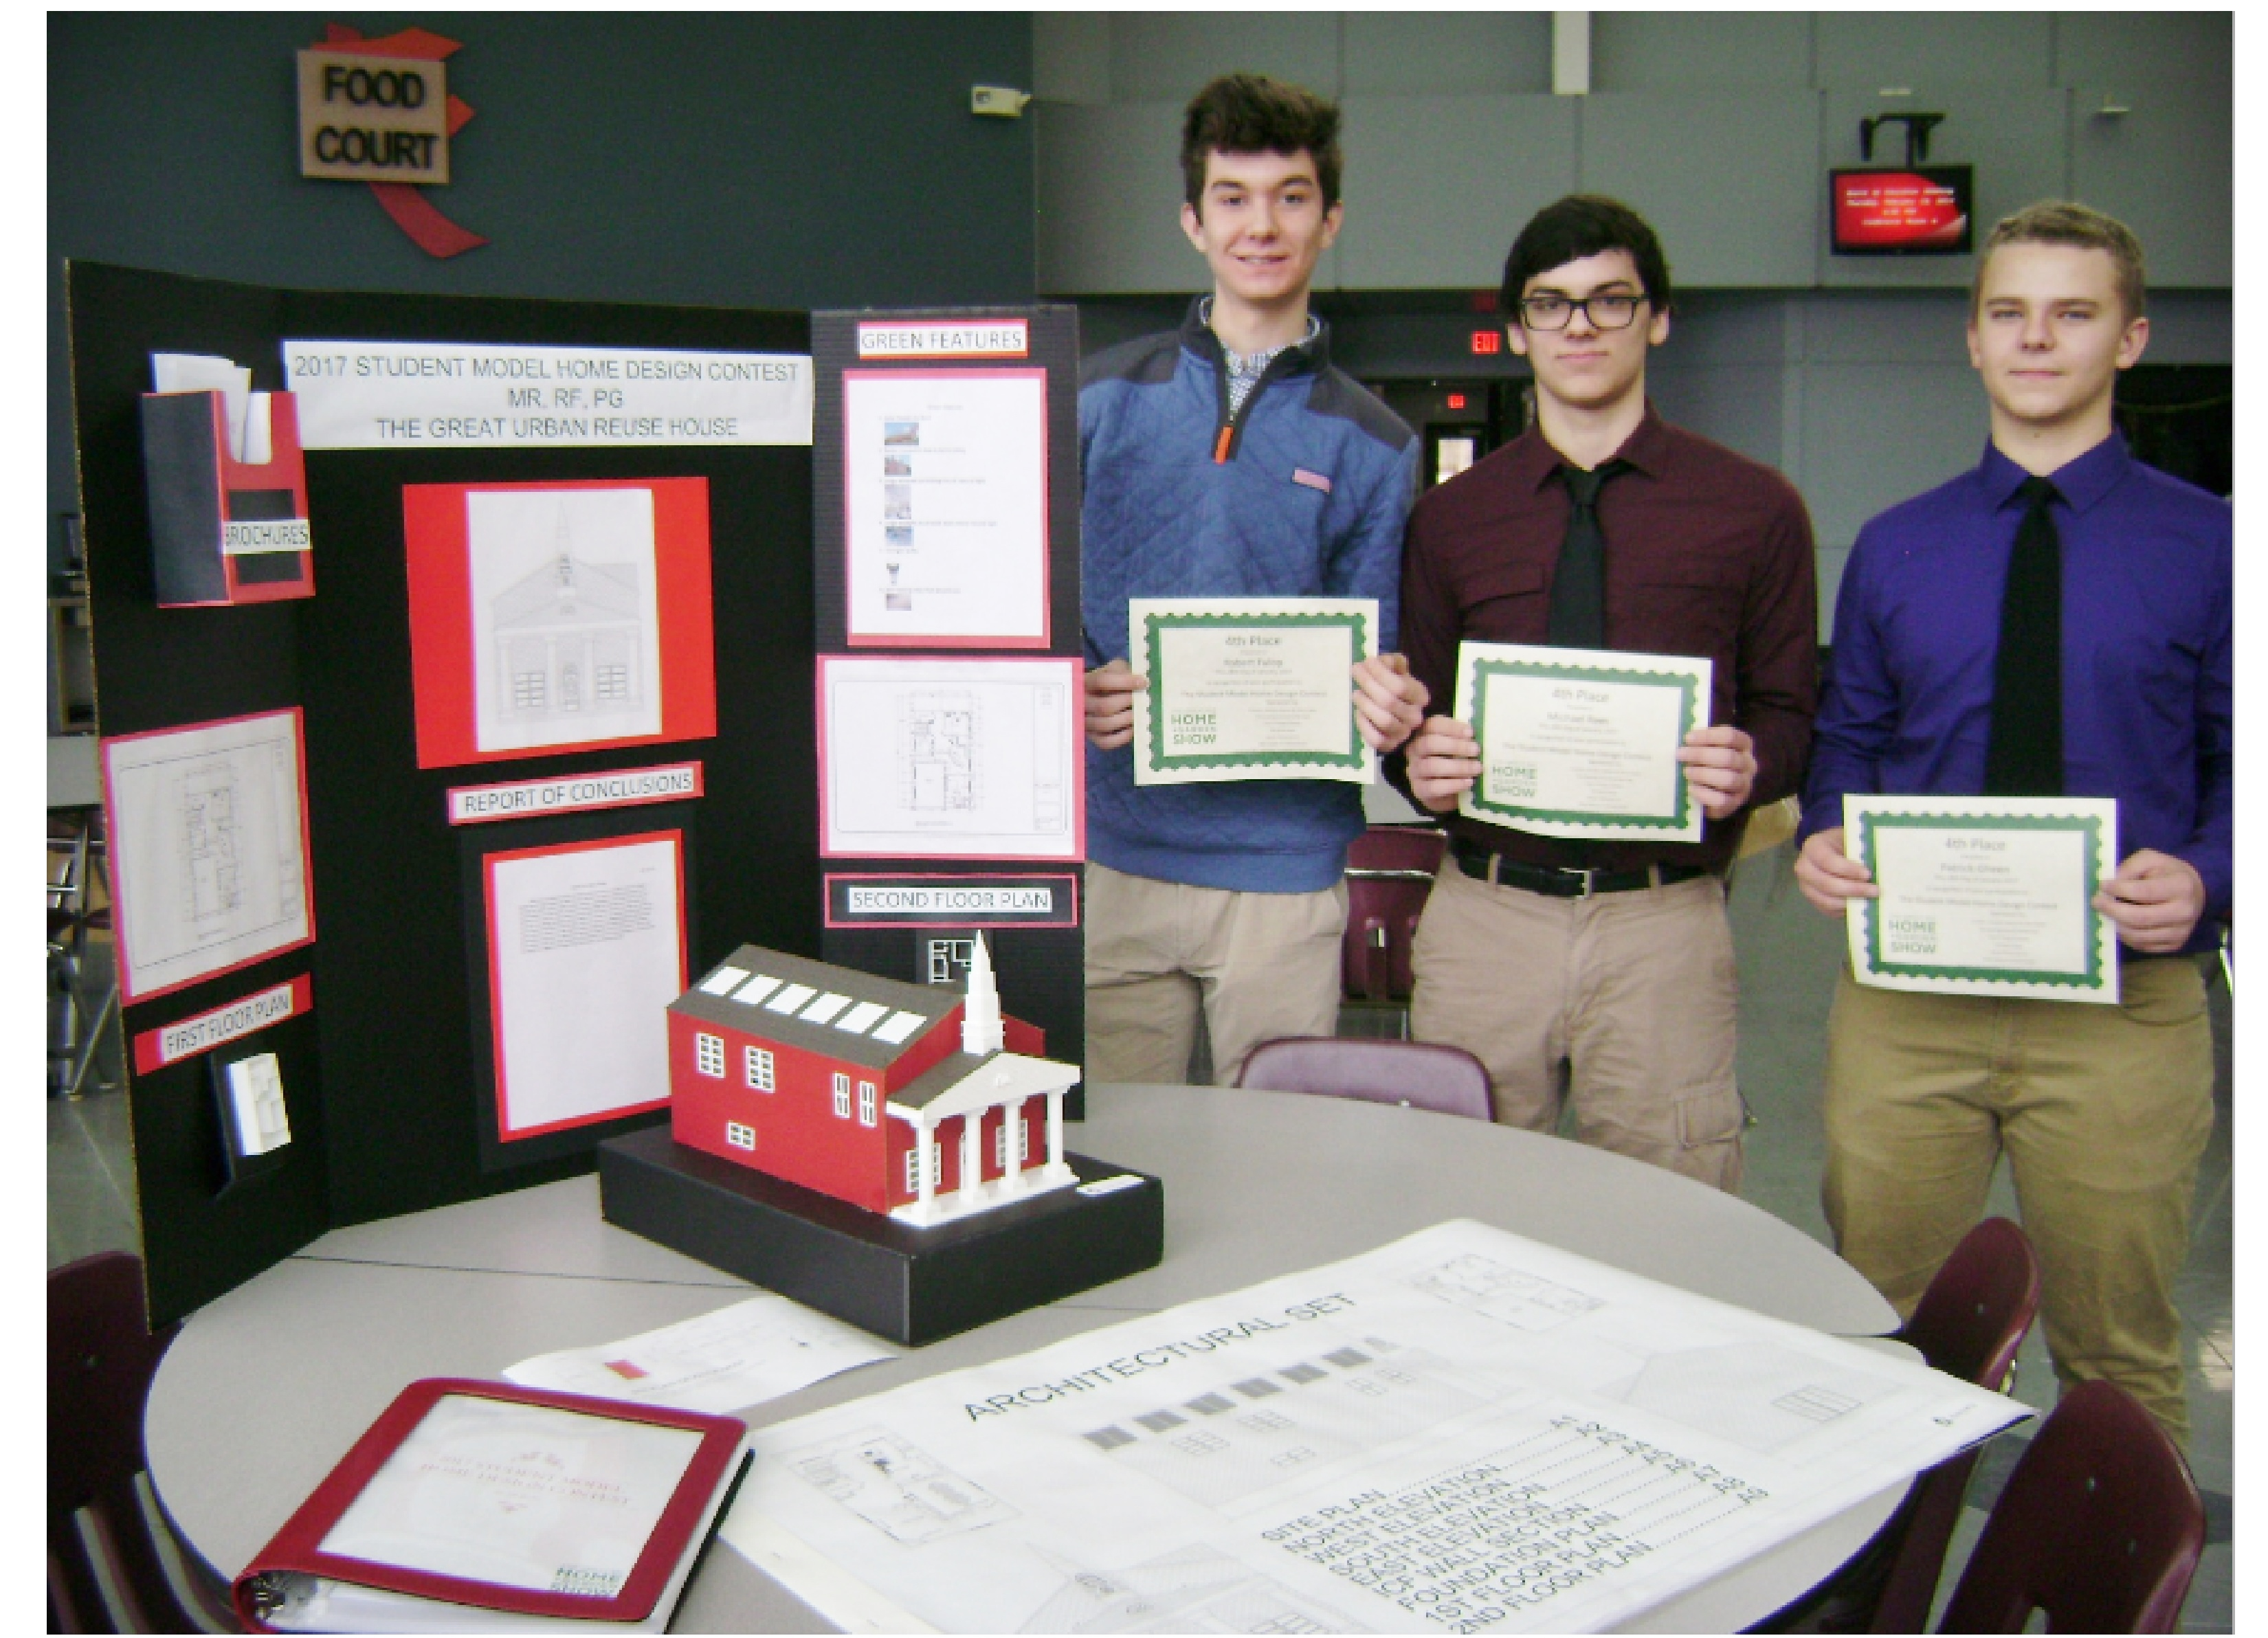 2017 Student Model Home Design Contest - Robert Fulop, Michael Rees, Patrick Gheen - 3rd place team.